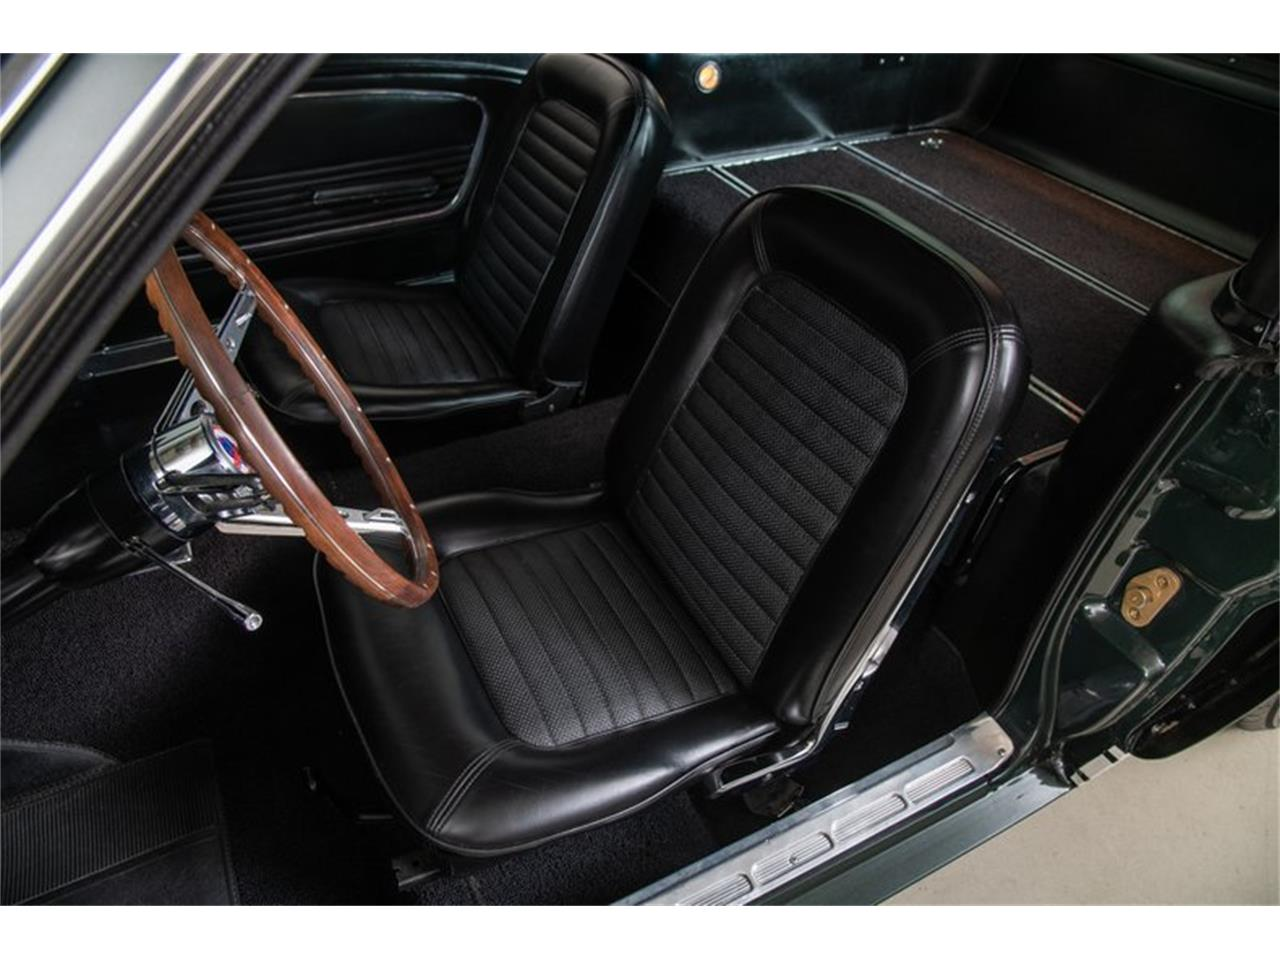 Large Picture of '66 Shelby GT350 Auction Vehicle Offered by Canepa - QKPF